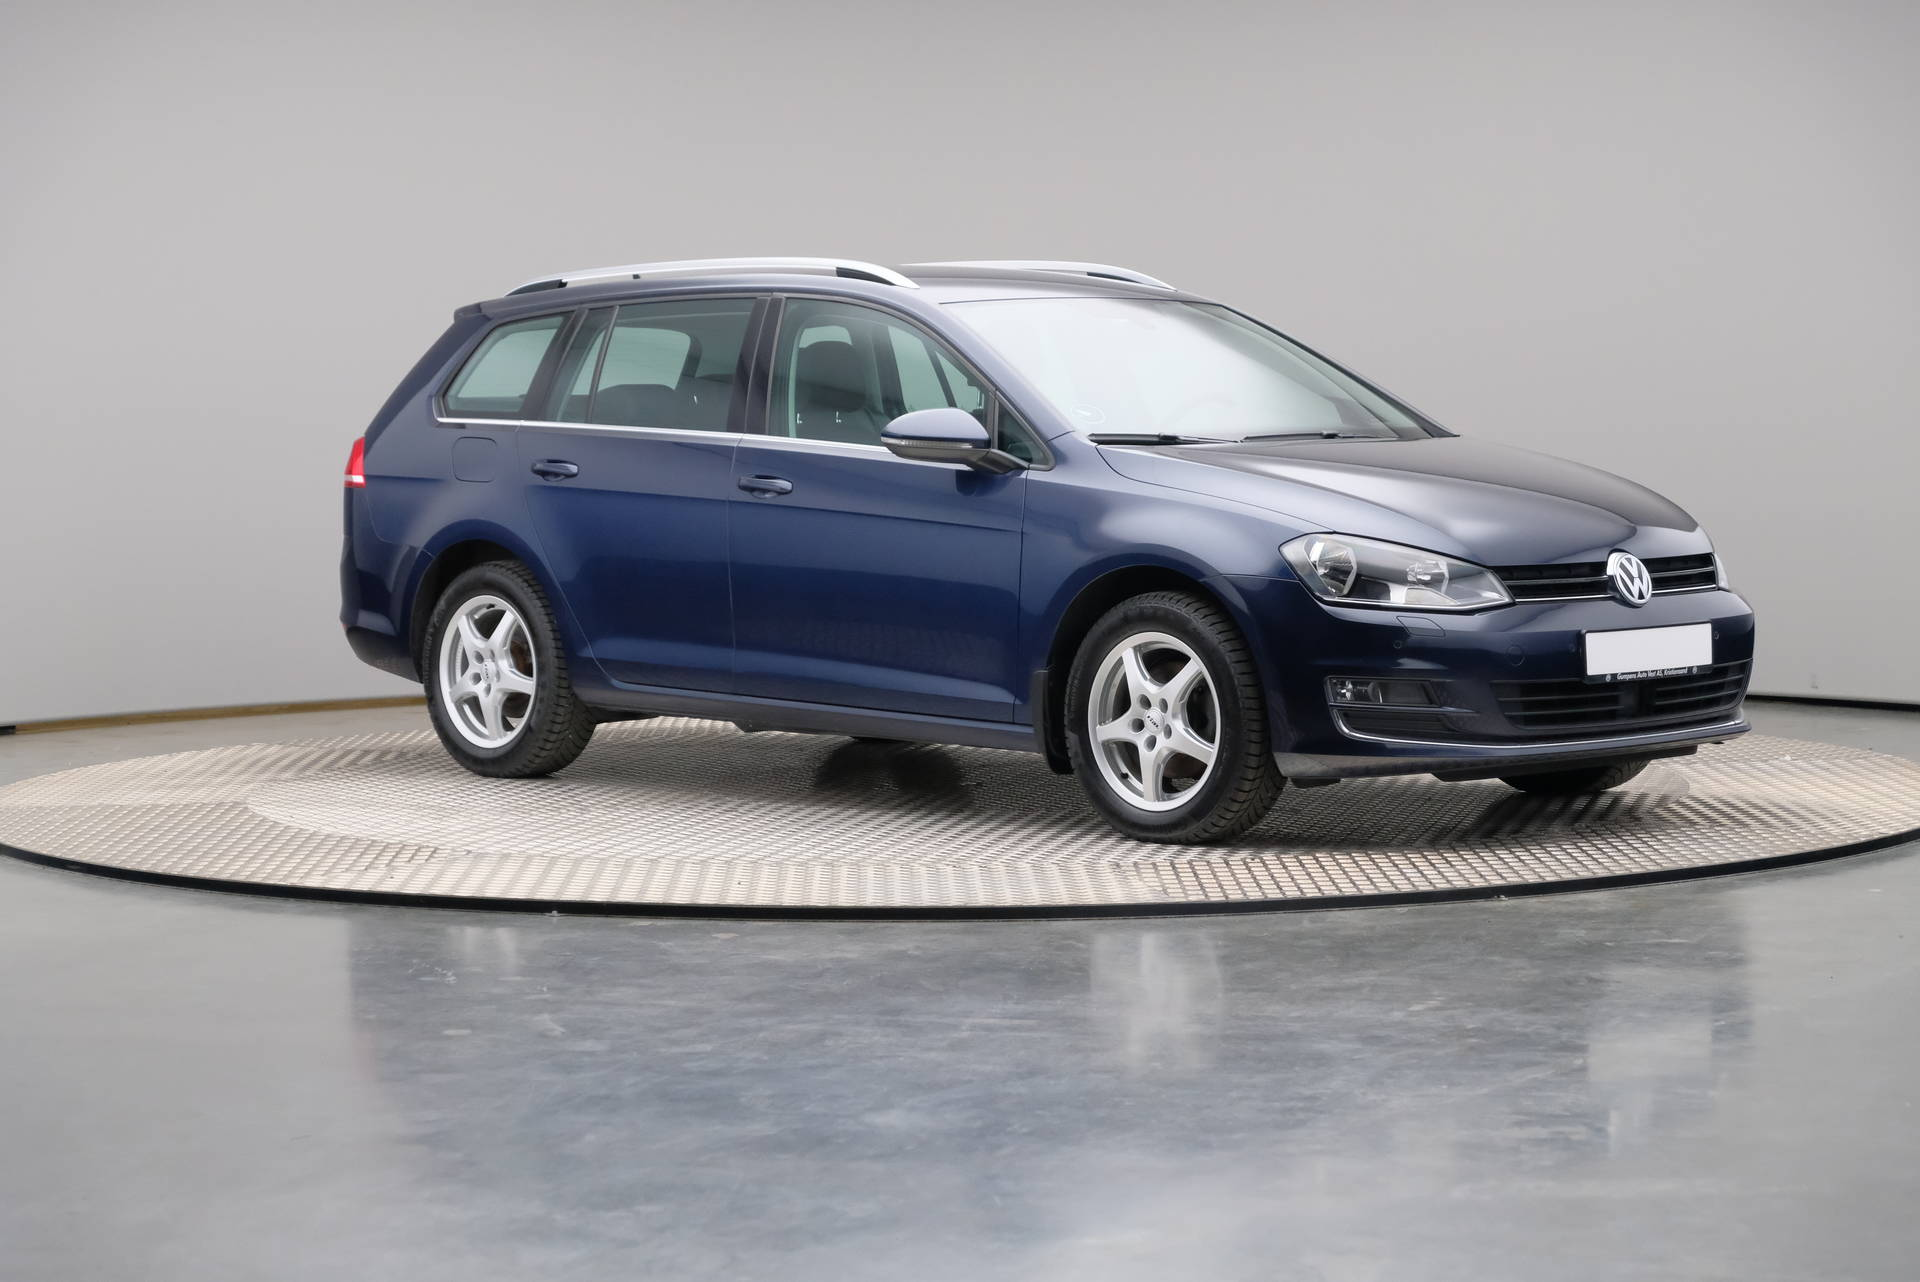 Volkswagen Golf Golf Variant 1.4 TSI BlueMotion Technology DSG, Highline, 360-image27